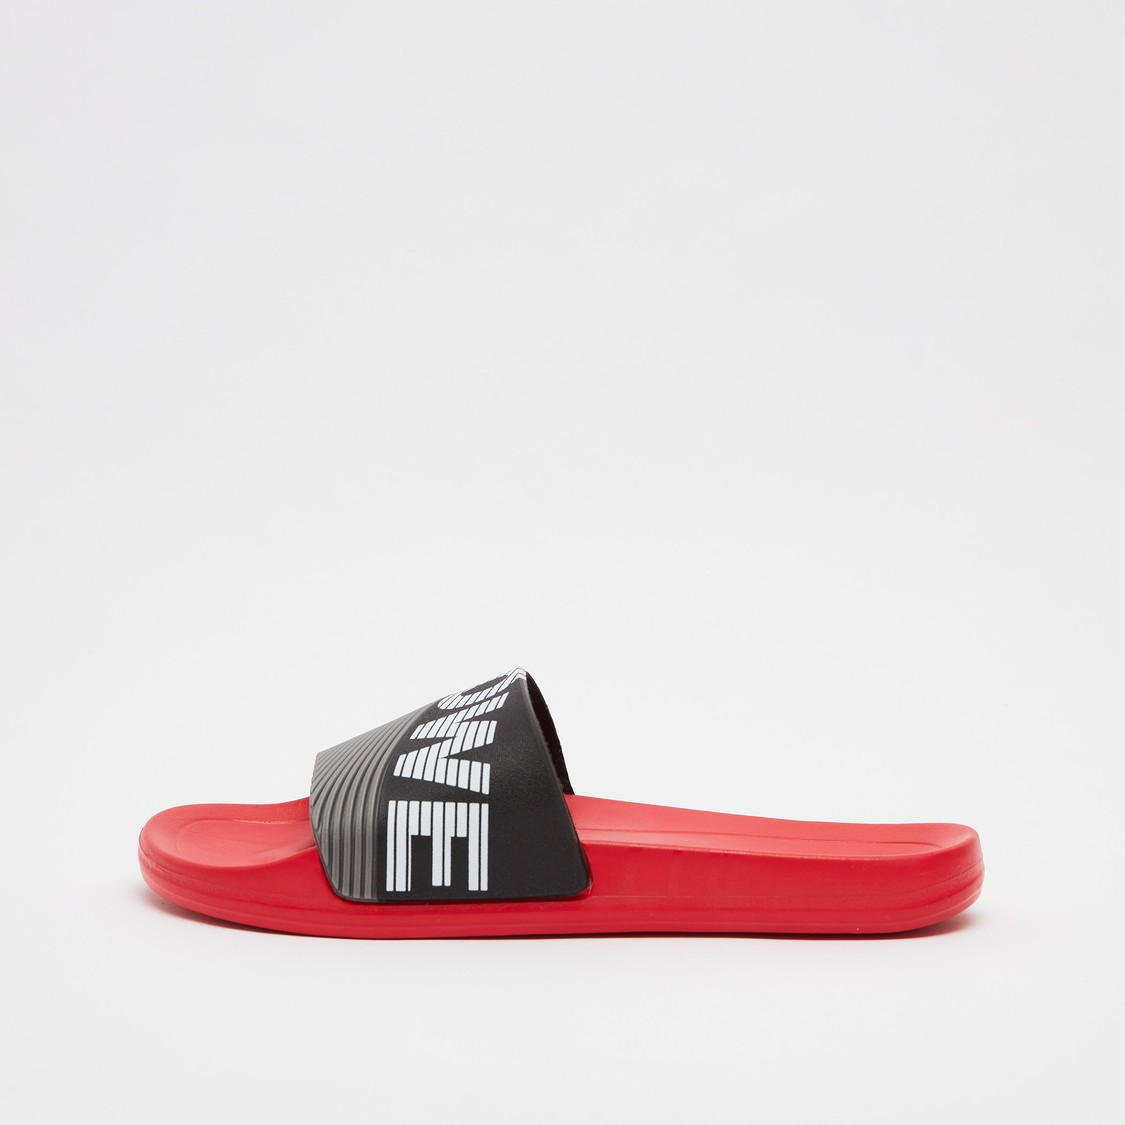 Textured Slip-On Slides with Vamp Band